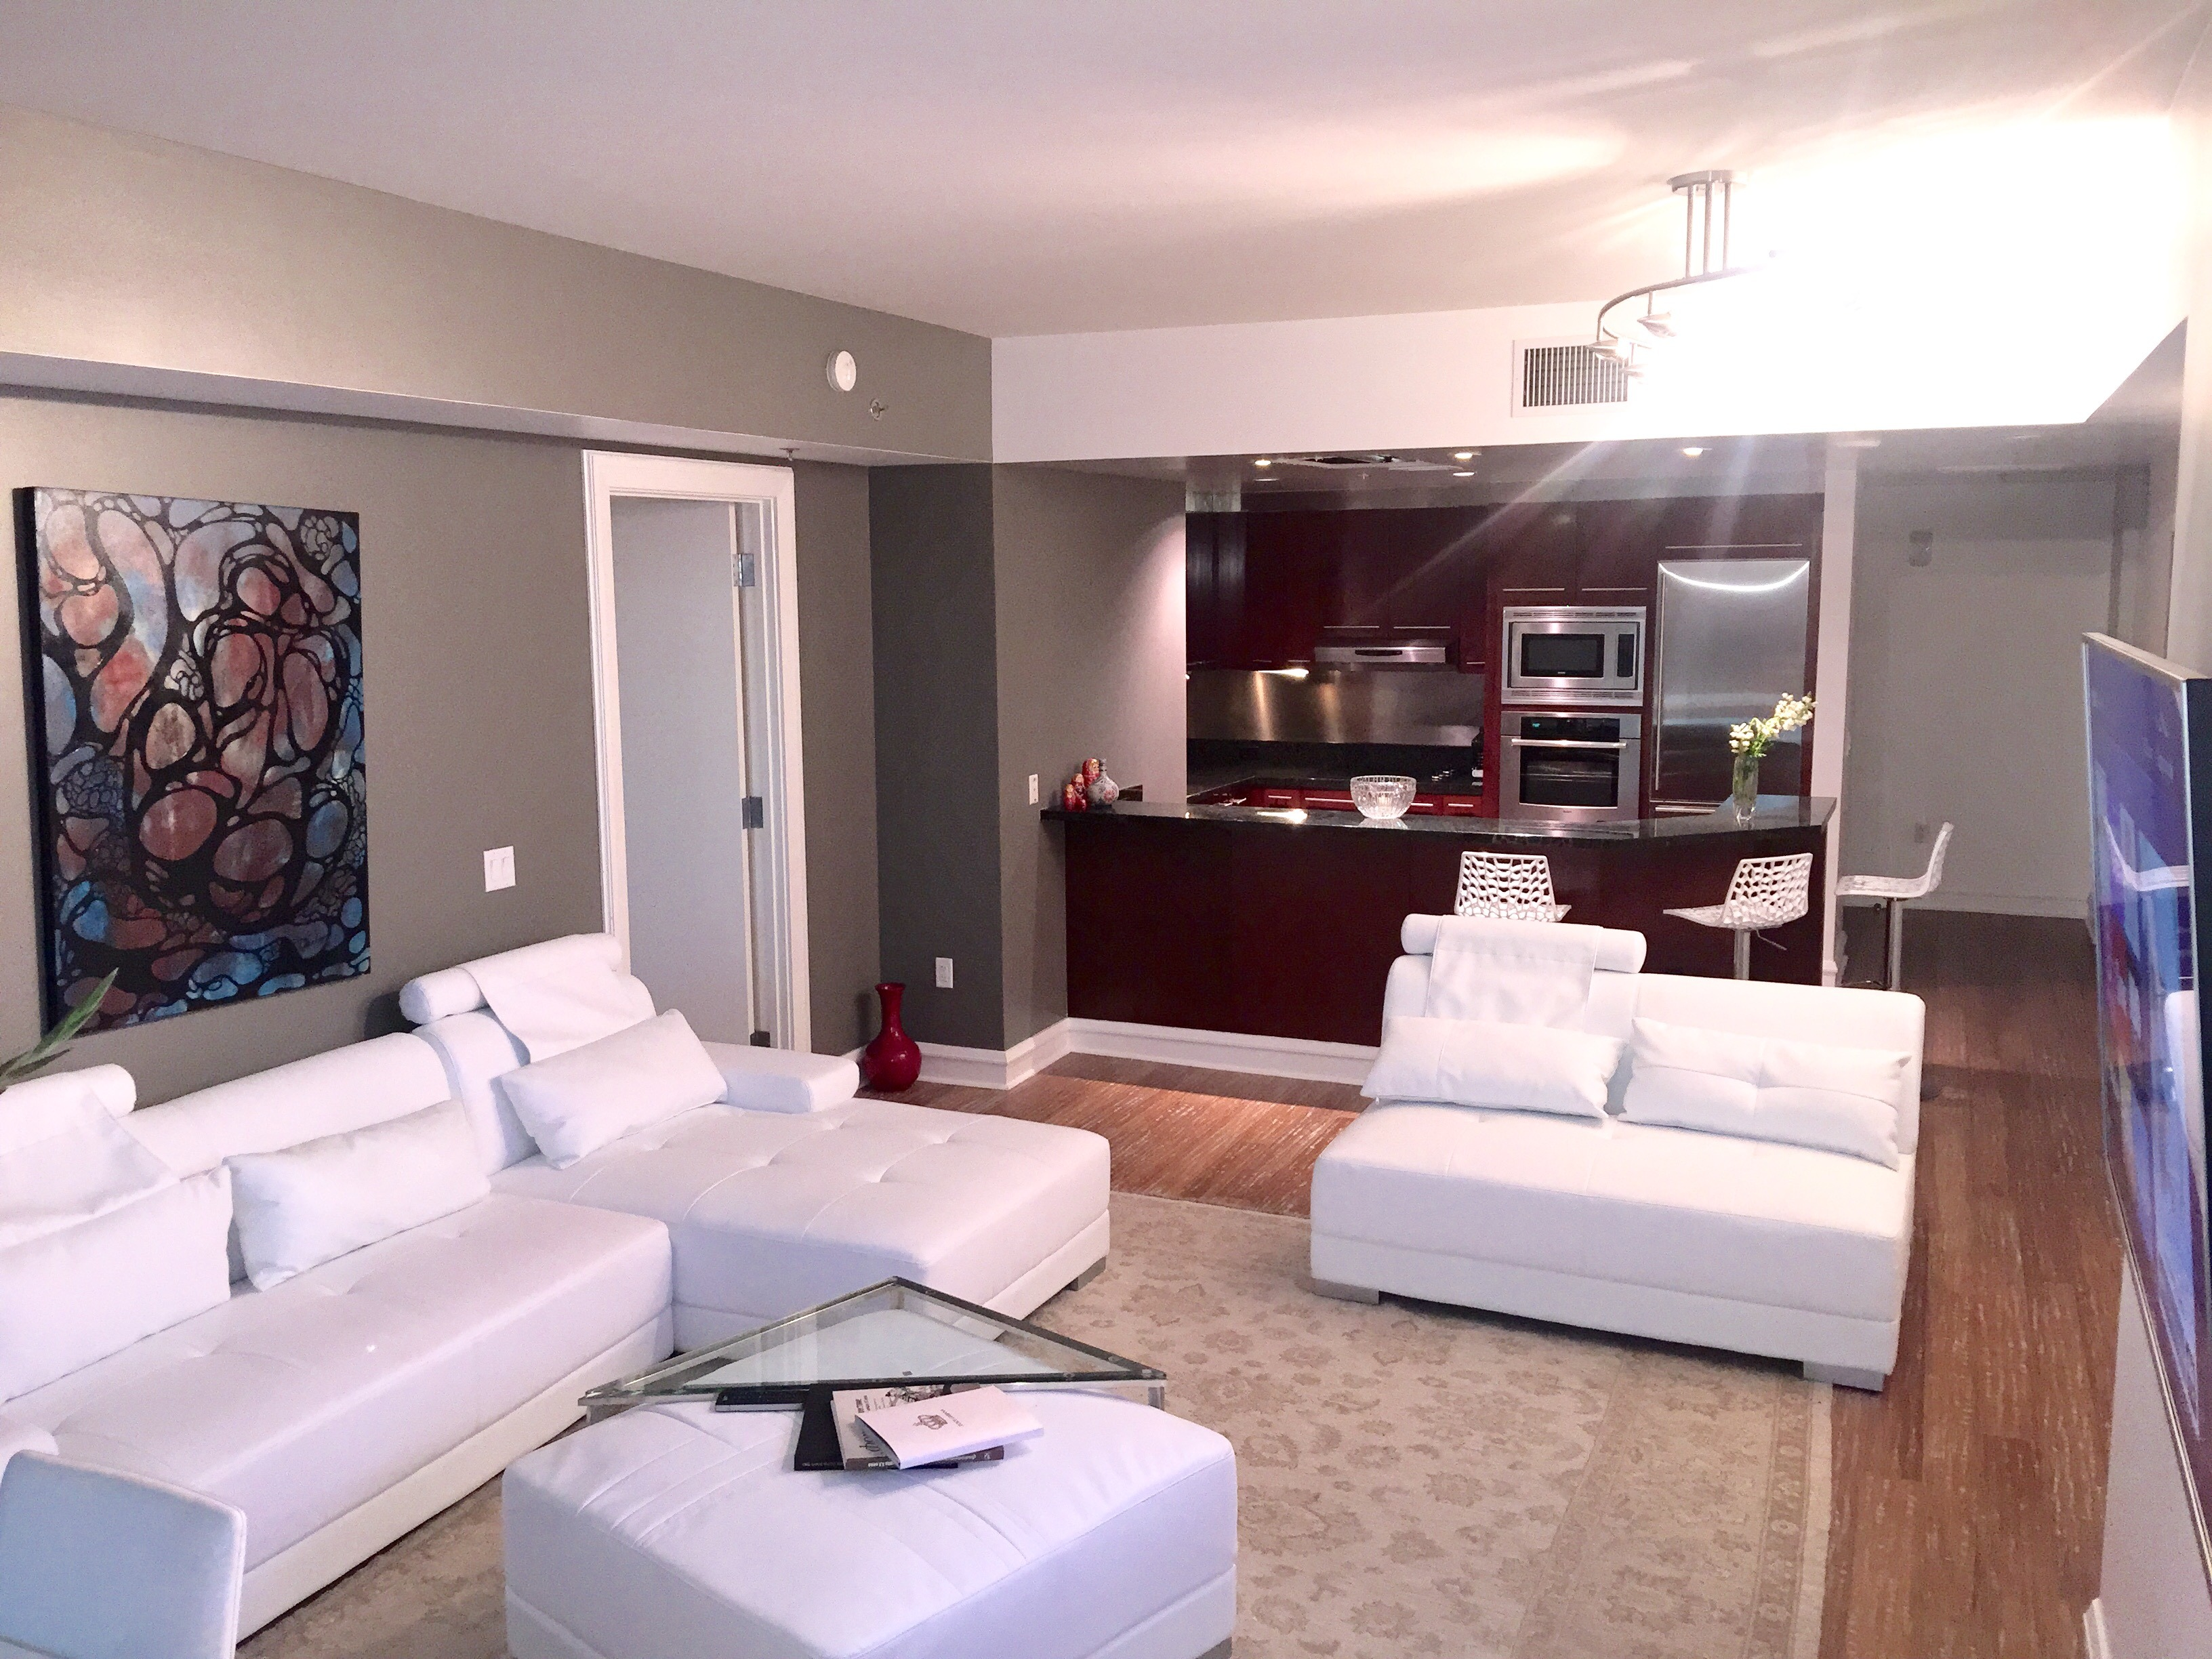 ... Luxury Las Vegas Strip Furnished Condo For Rent Las Vegas Strip View  Luxuriously Furnished At Sky ...